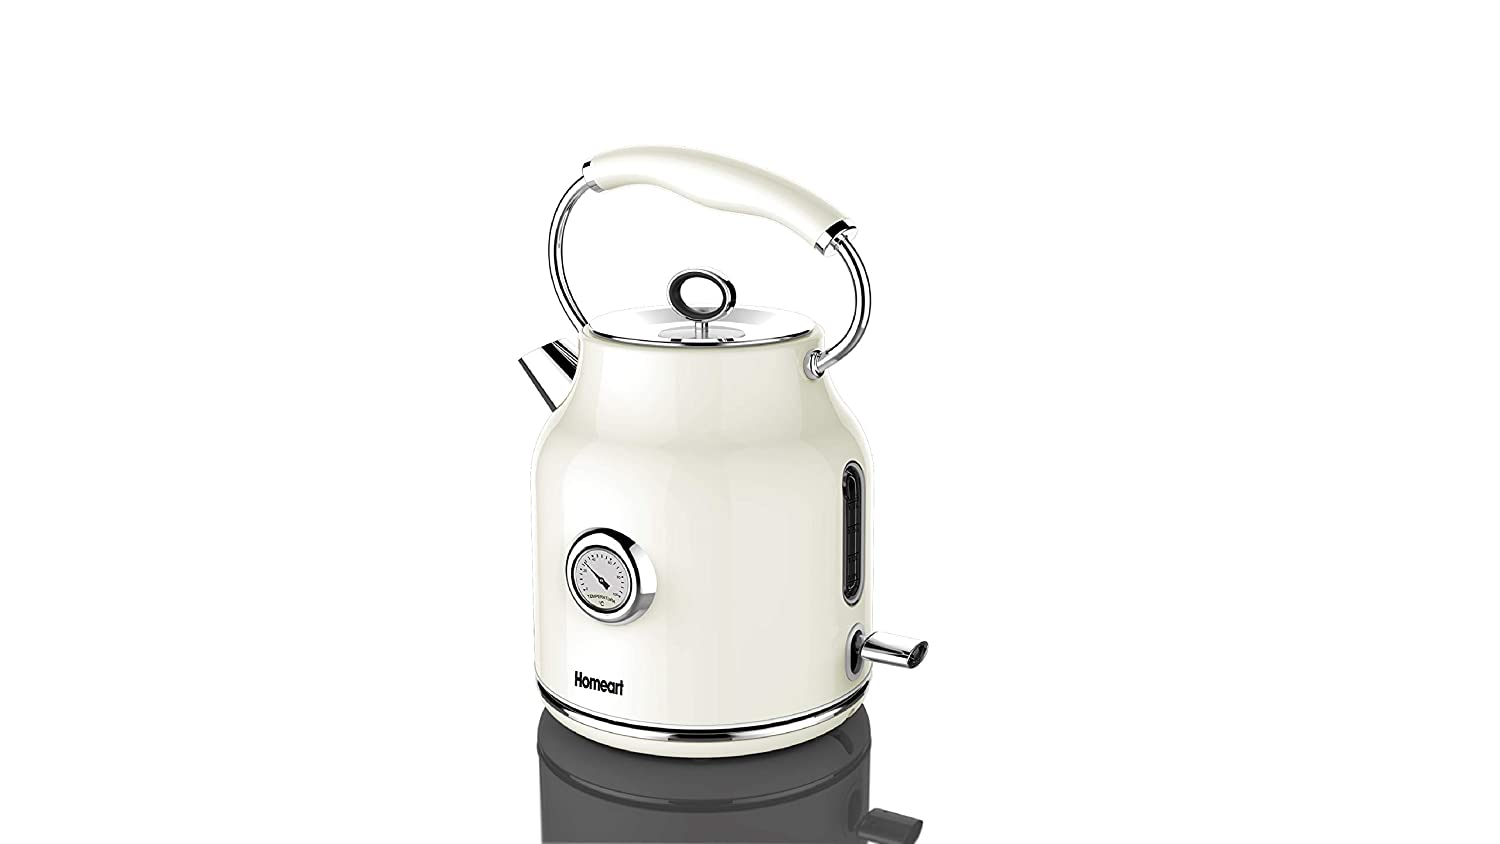 Electric Kettle Stainless Steel Stylish | 1.7 Liter | Homeart Temperature Gauge Kettle (Cream)